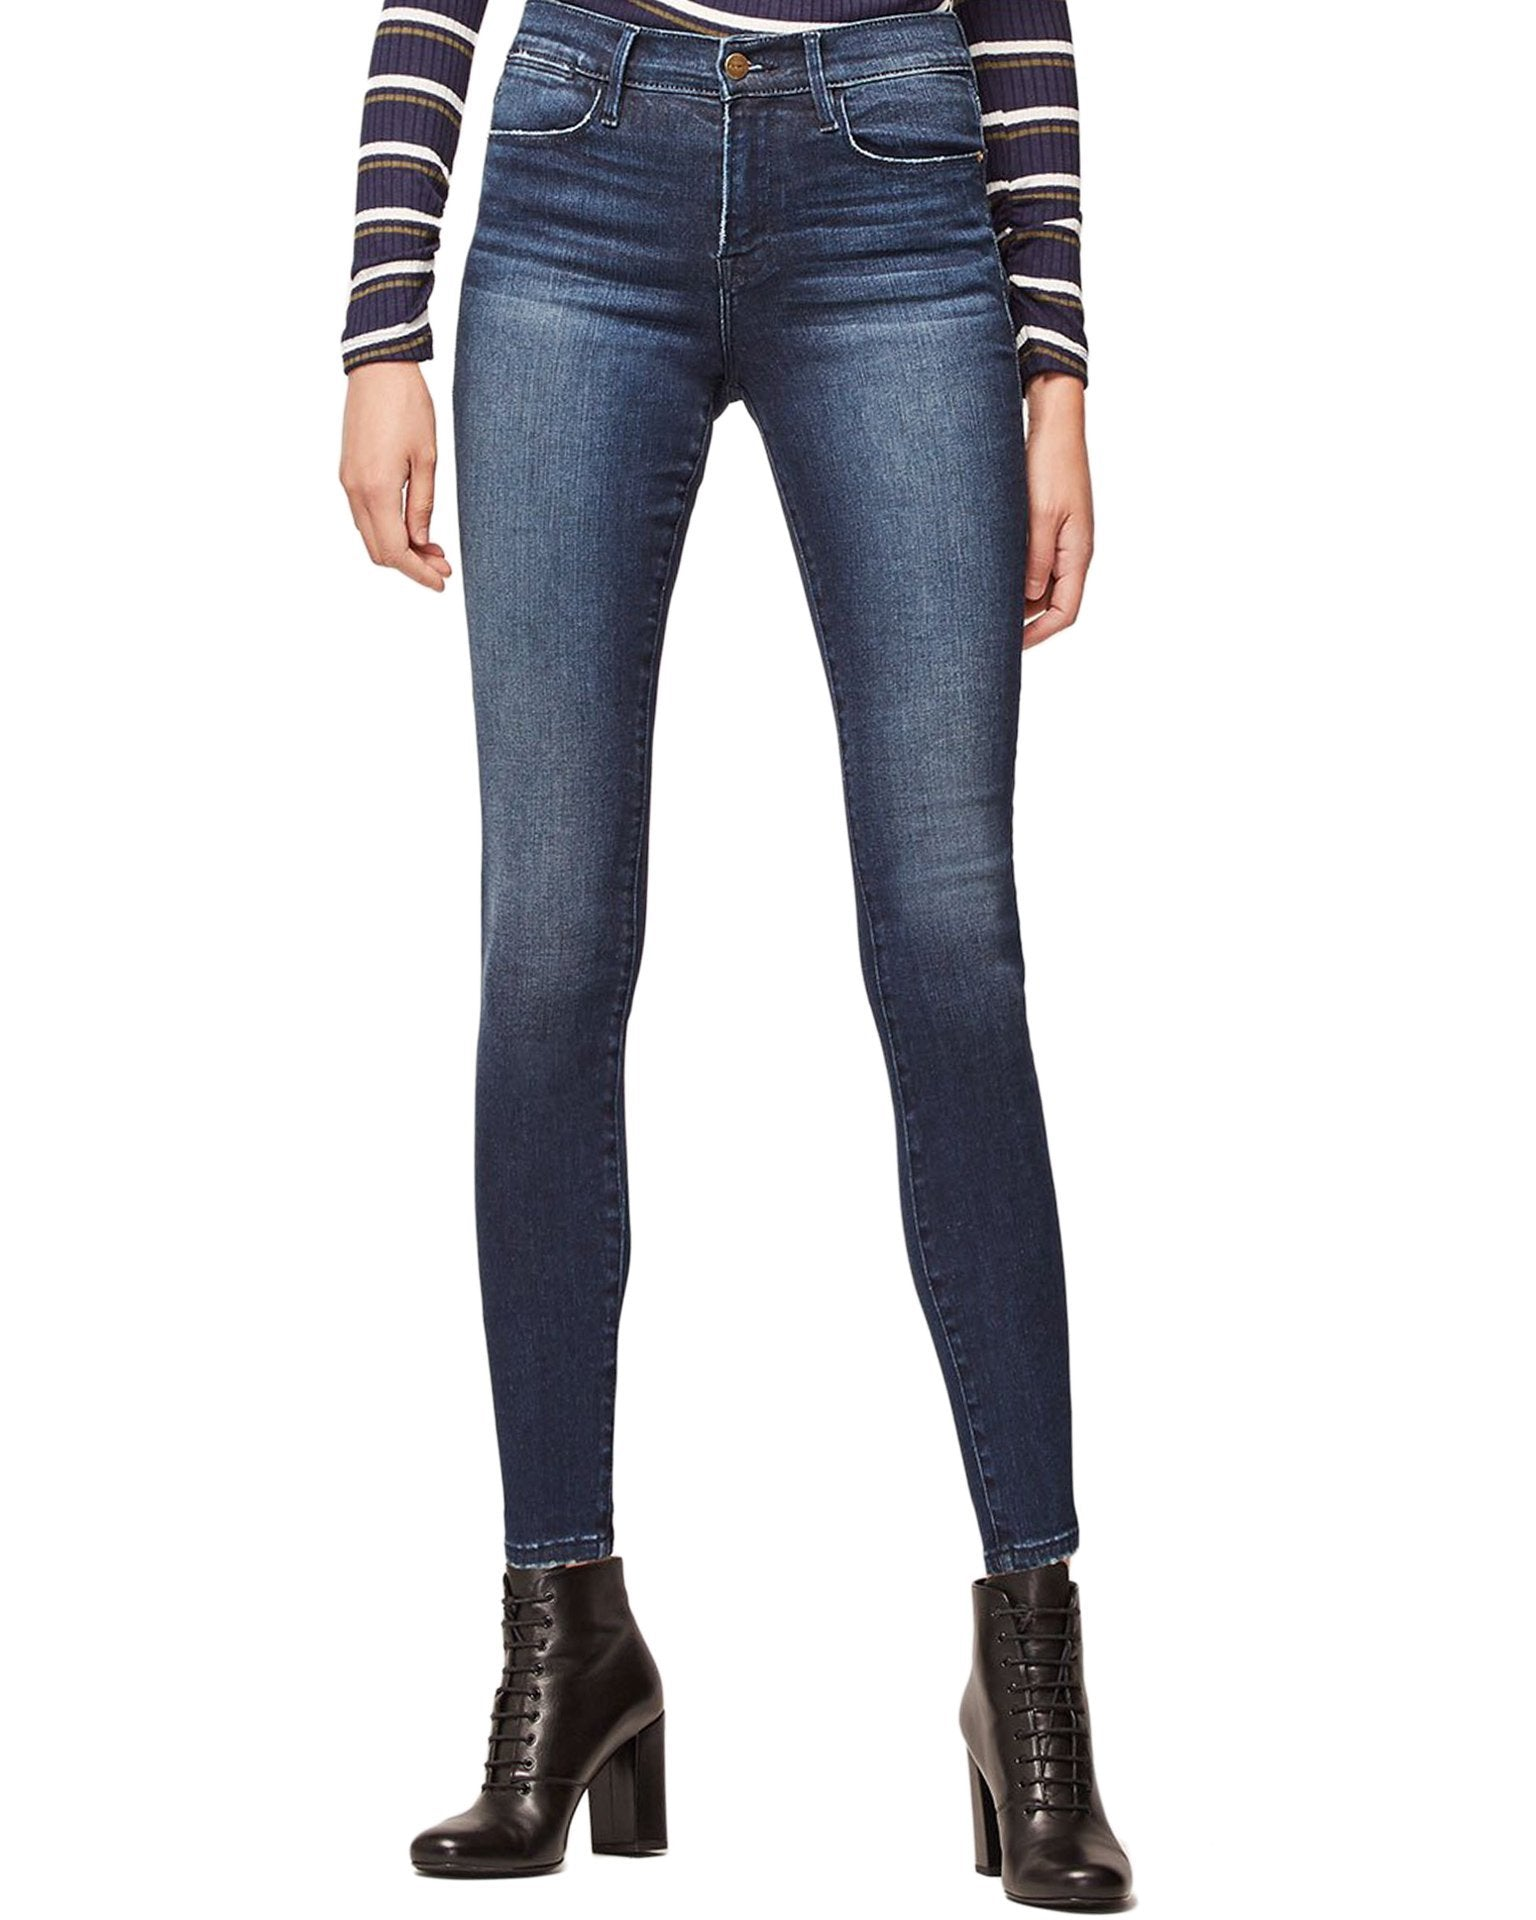 Frame Denim Swank / 25 Le High Skinny in Swank